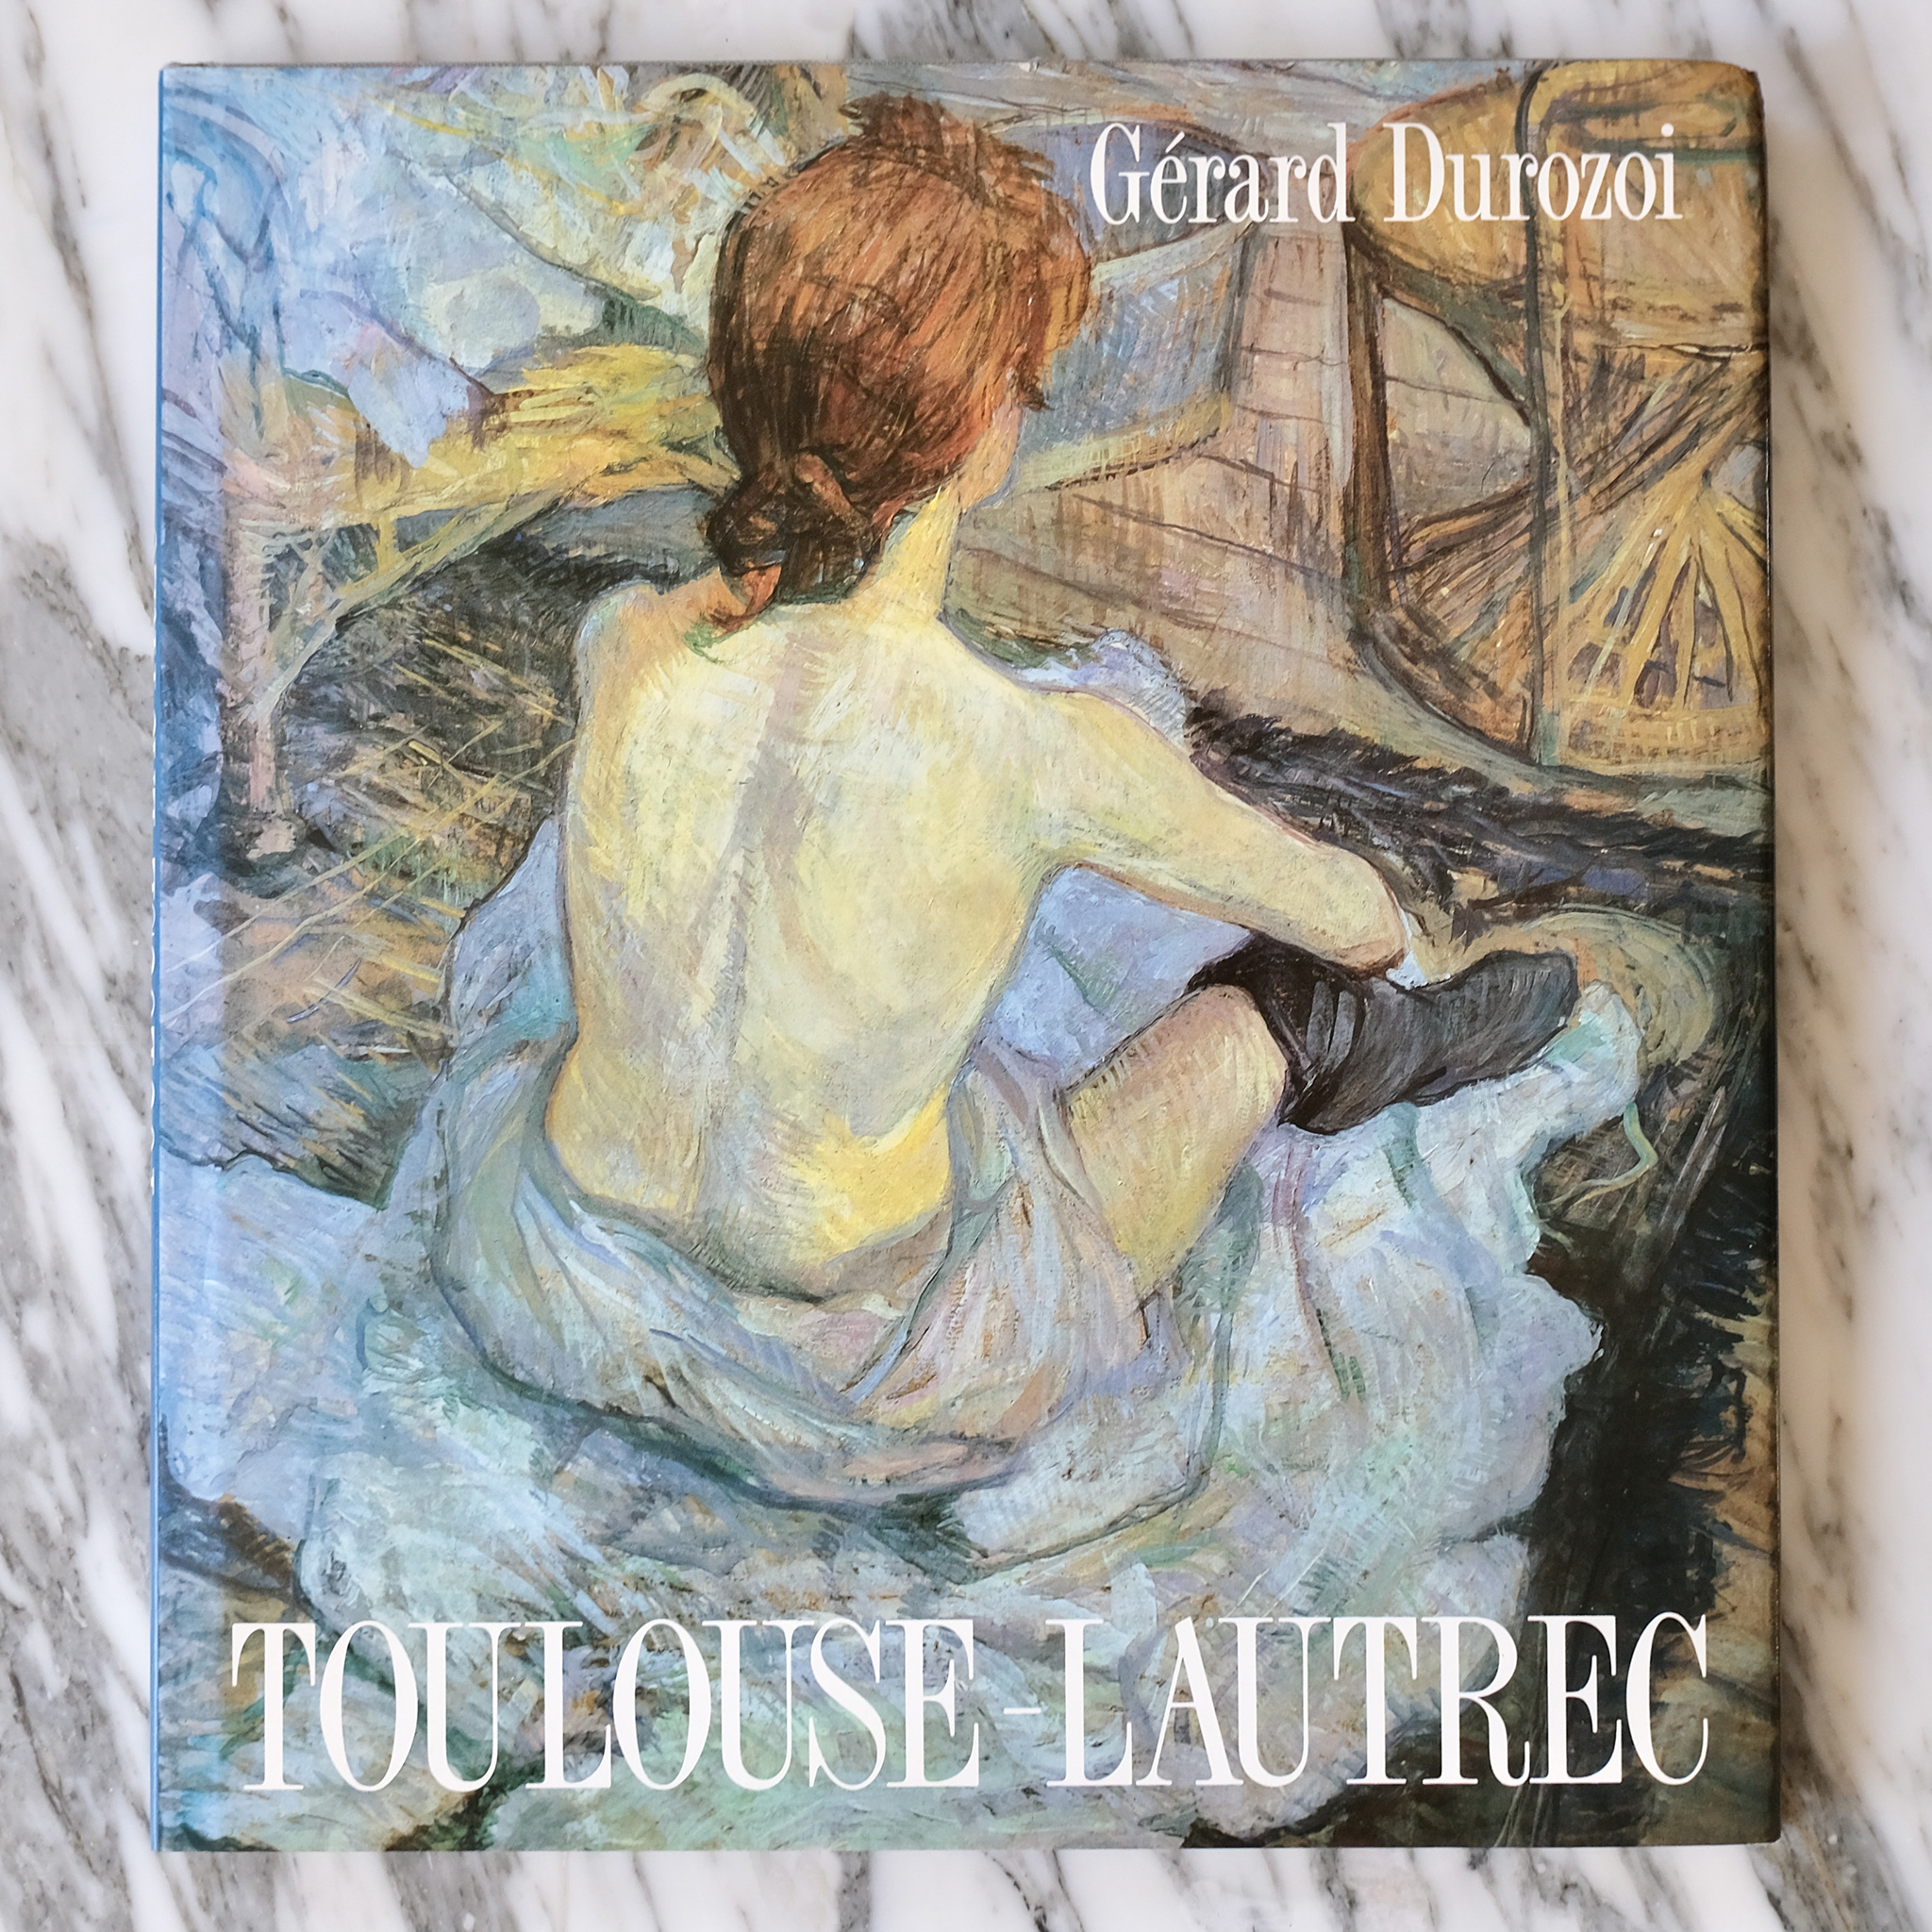 Toulouse-Lautrec Book Bouquinistes Auction